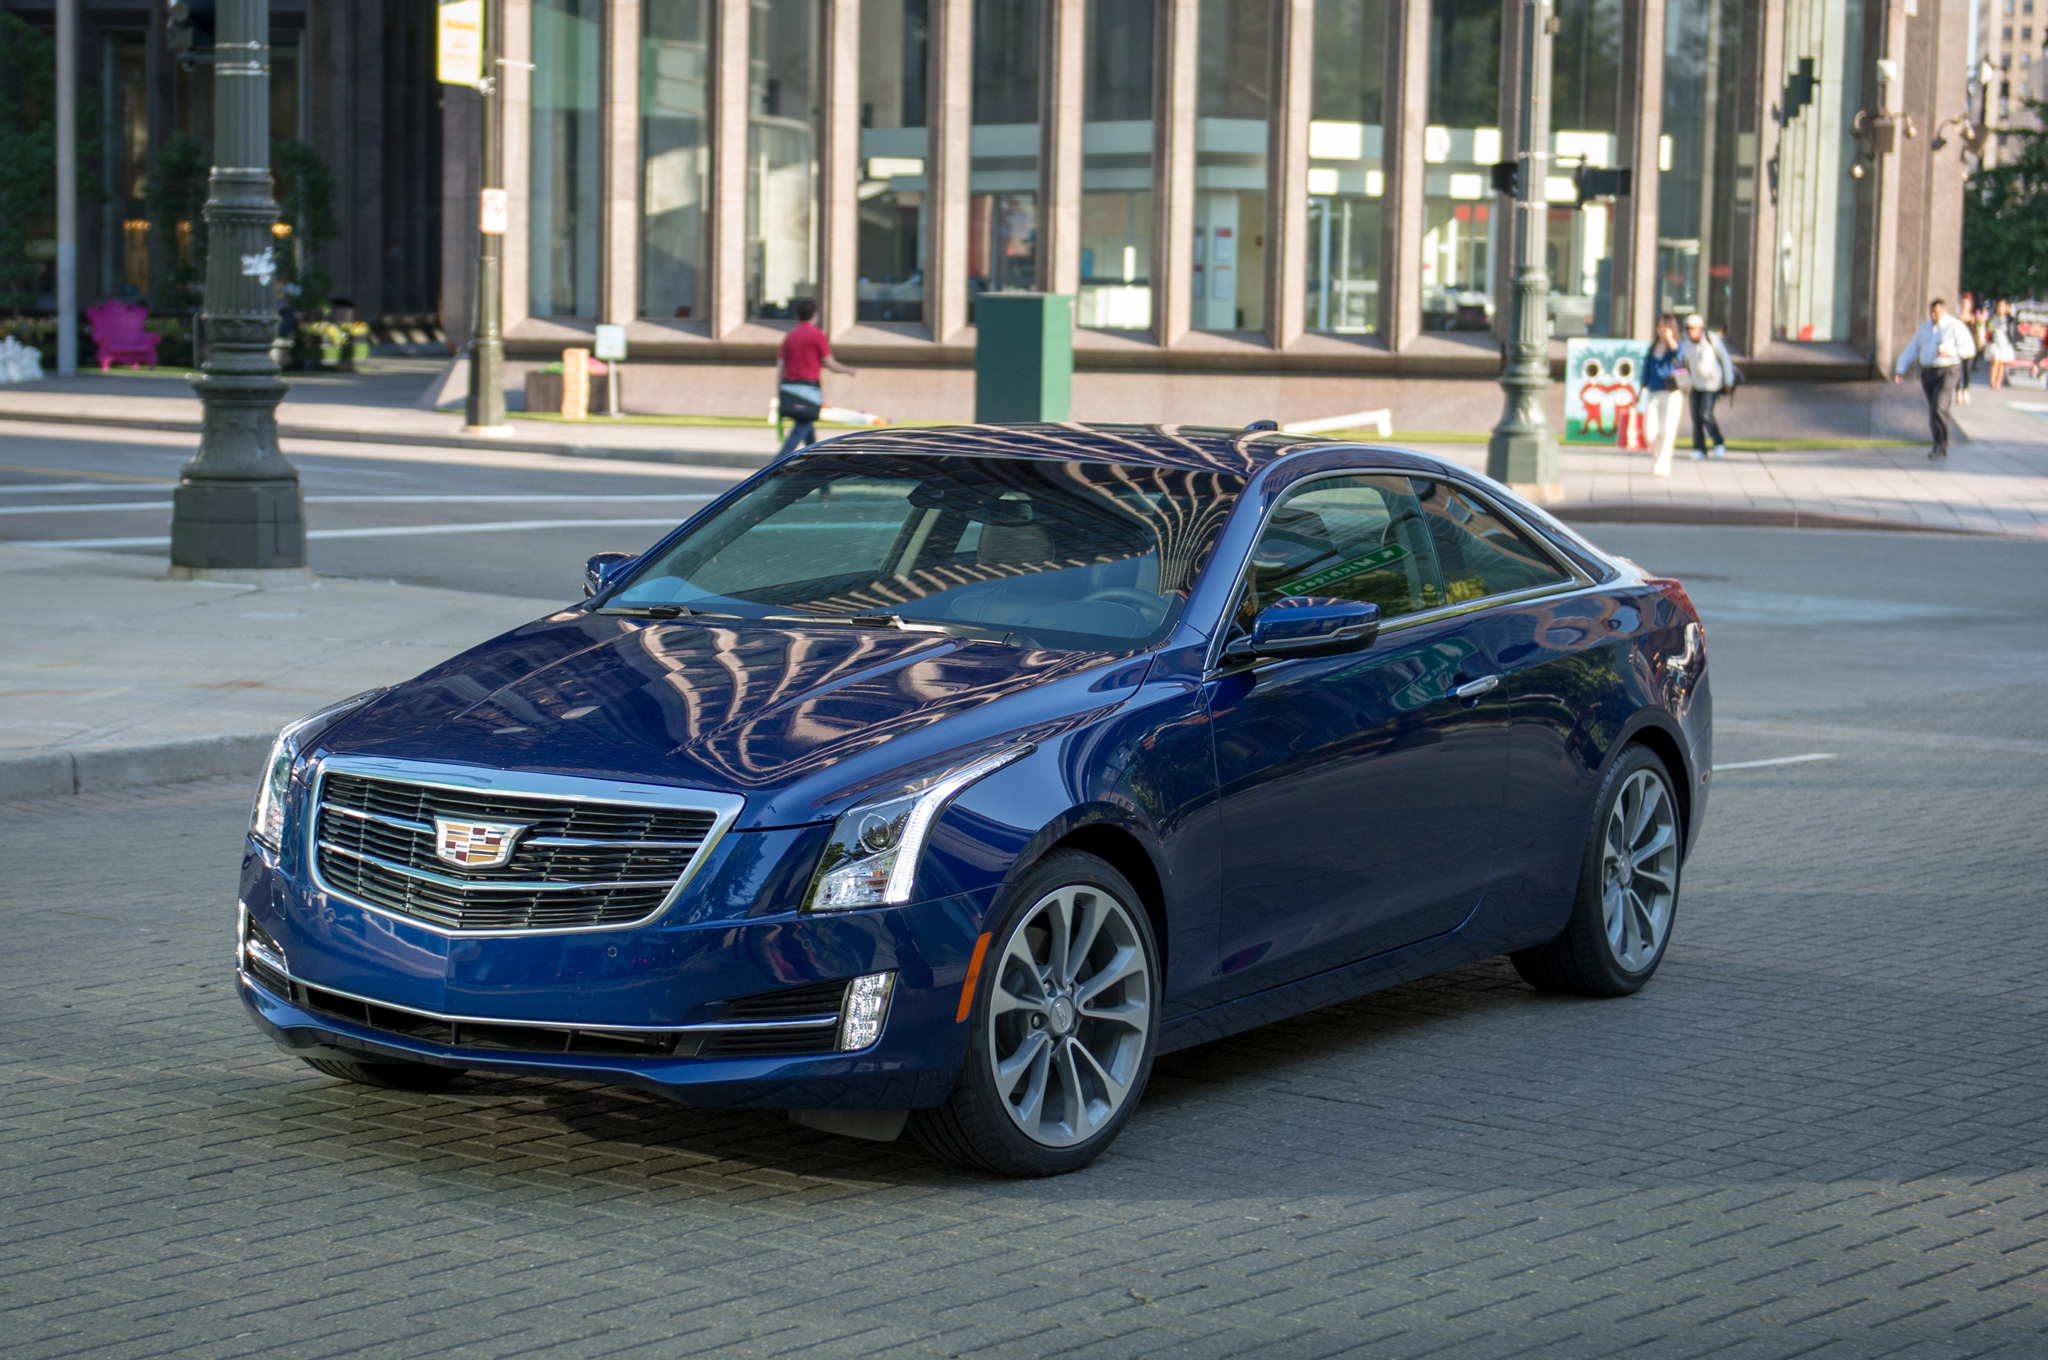 2015 Cadillac ATS Coupe Pictures Gallery (21 Images)